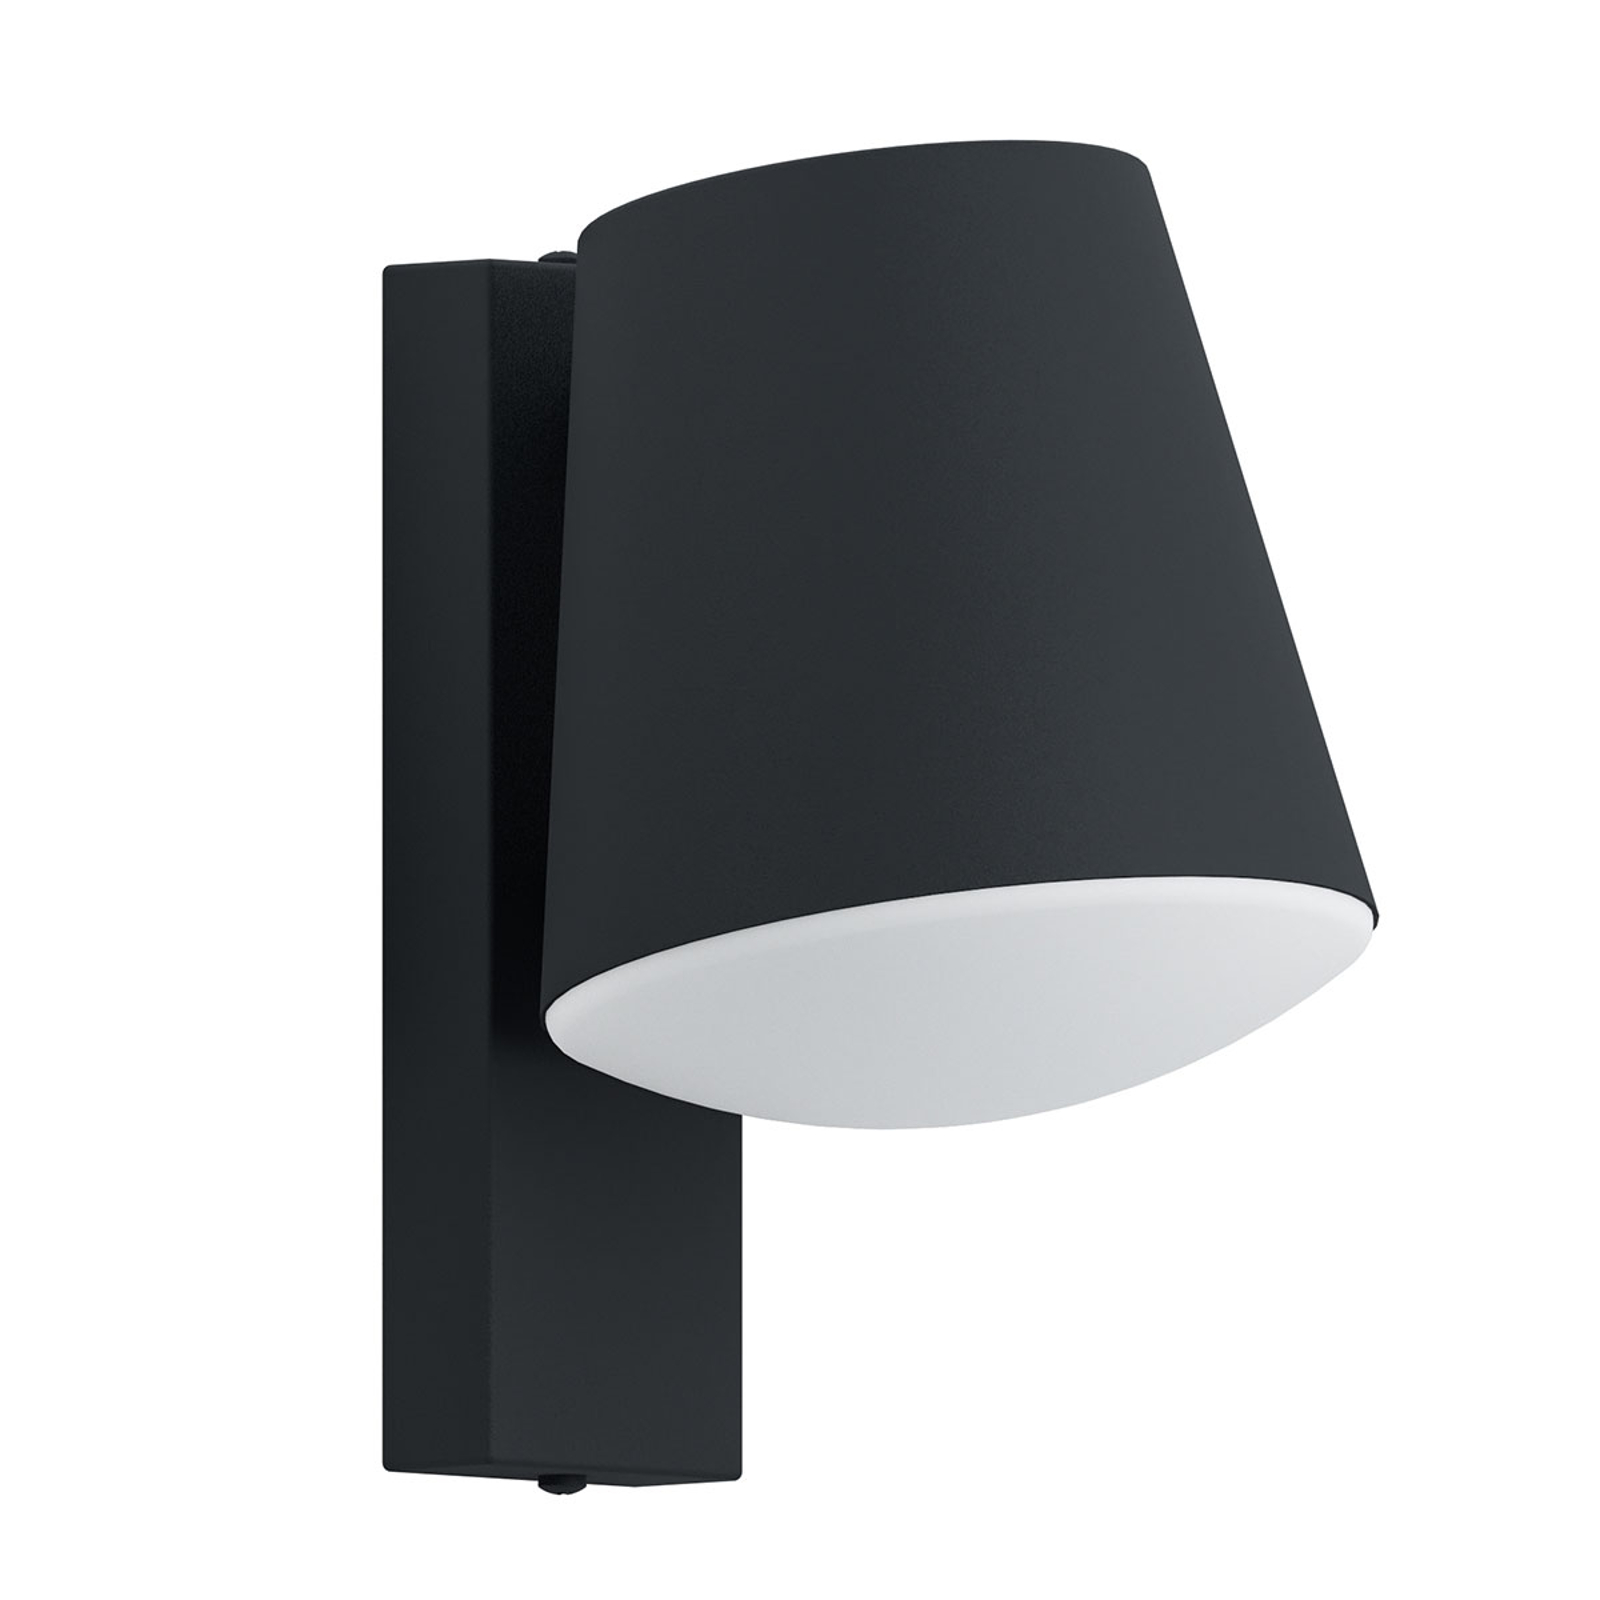 EGLO connect Caldiero-C applique LED antracite